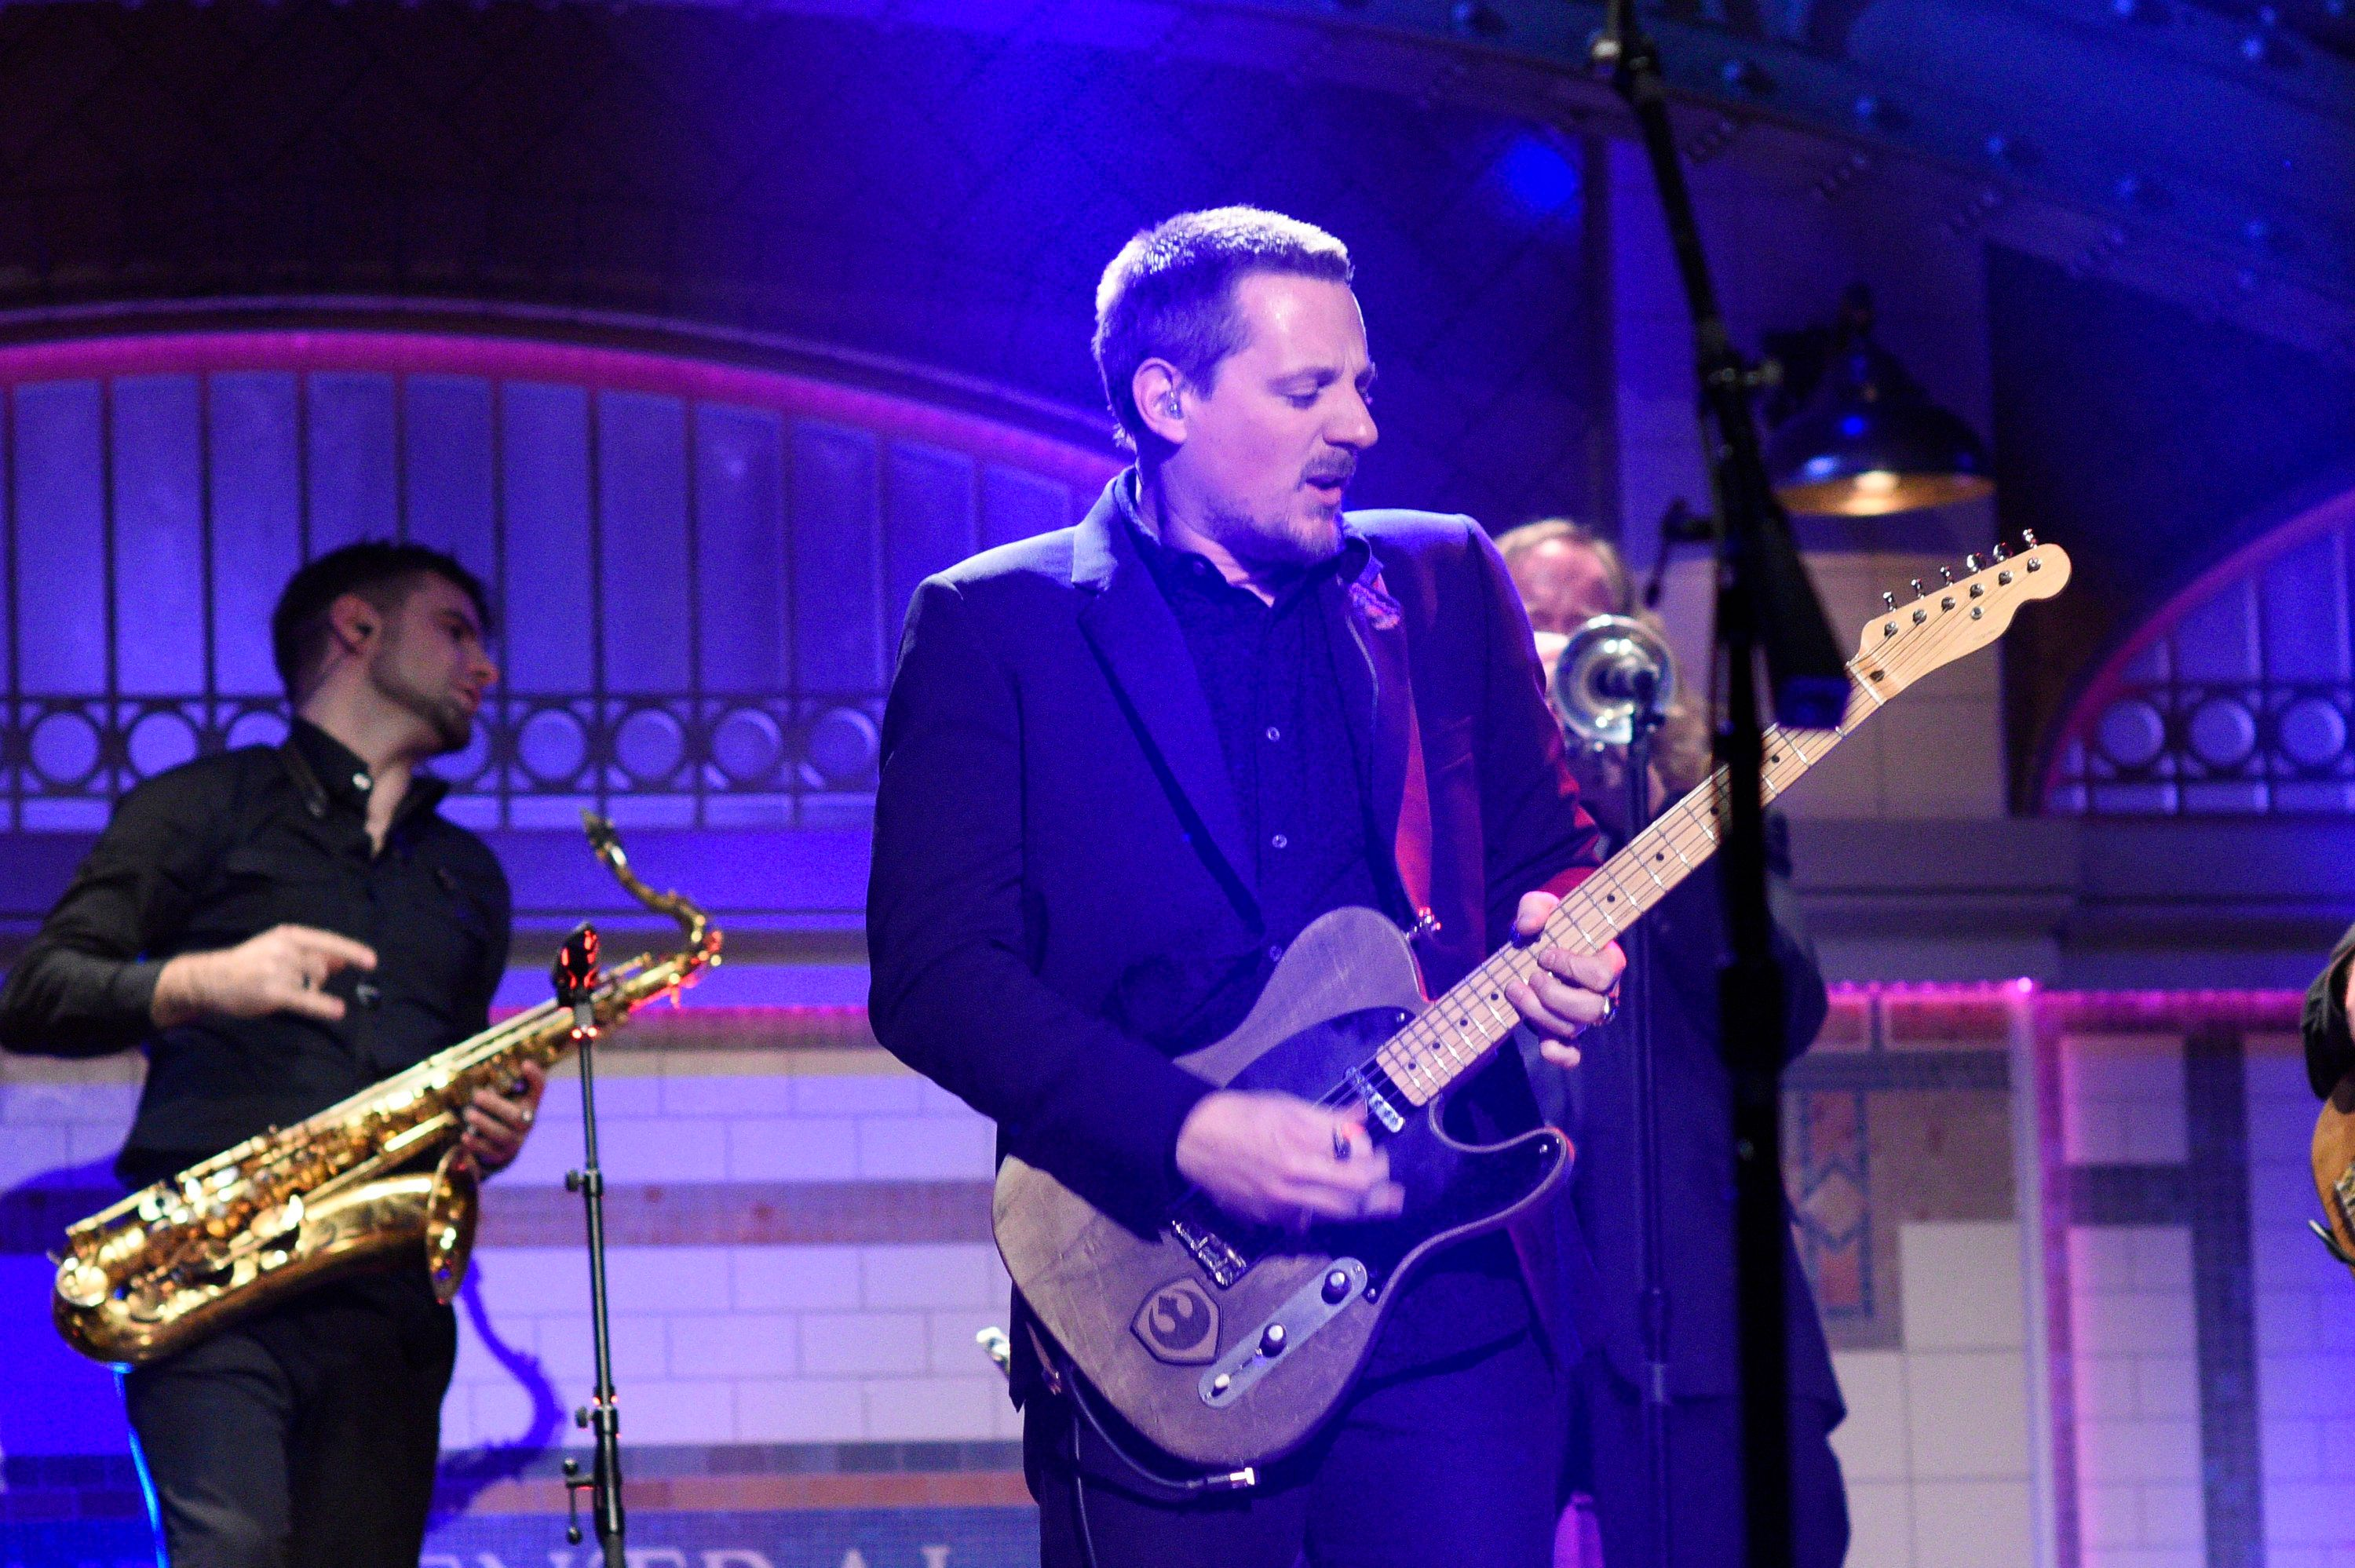 SATURDAY NIGHT LIVE -- 'Felicity Jones' Episode 1715 -- Pictured: Musical guest Sturgill Simpson performs on January 14th, 2017 -- (Photo by: Will Heath/NBC/NBCU Photo Bank via Getty Images)